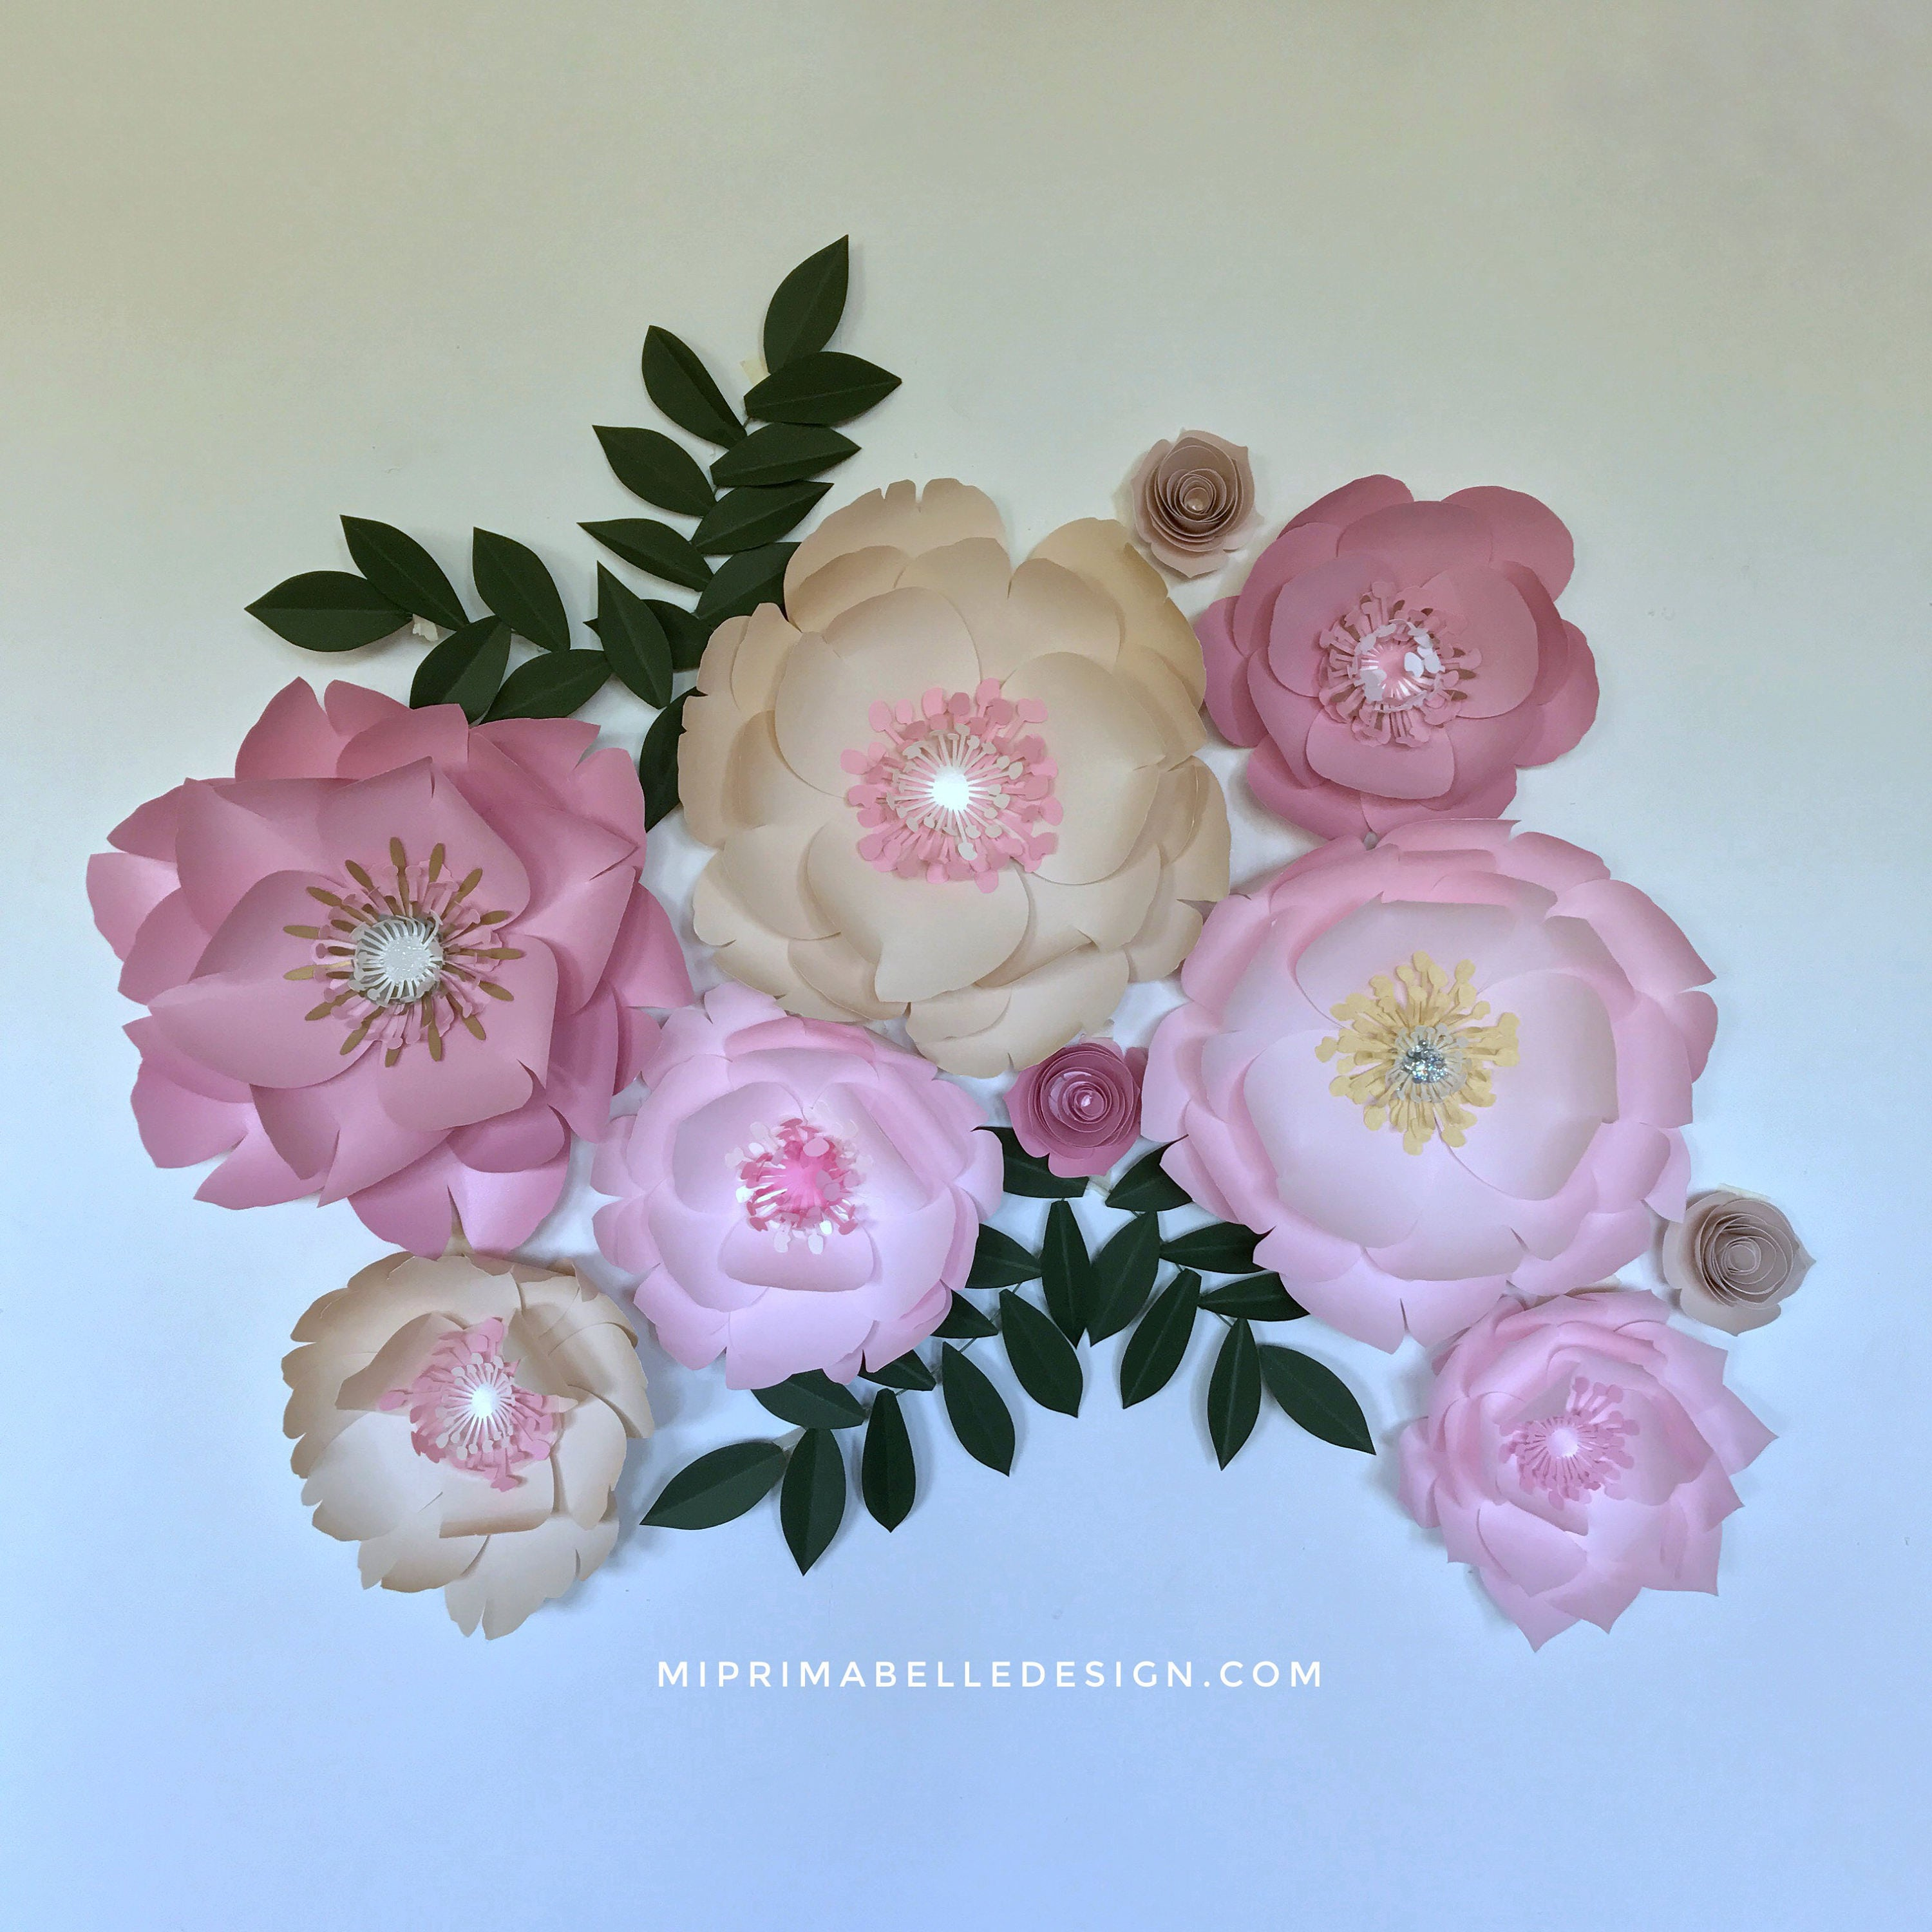 Paper flowers flower backdrop decor wedding backdrop bedroom decor wall decor pink paper flowers gallery photo gallery photo mightylinksfo